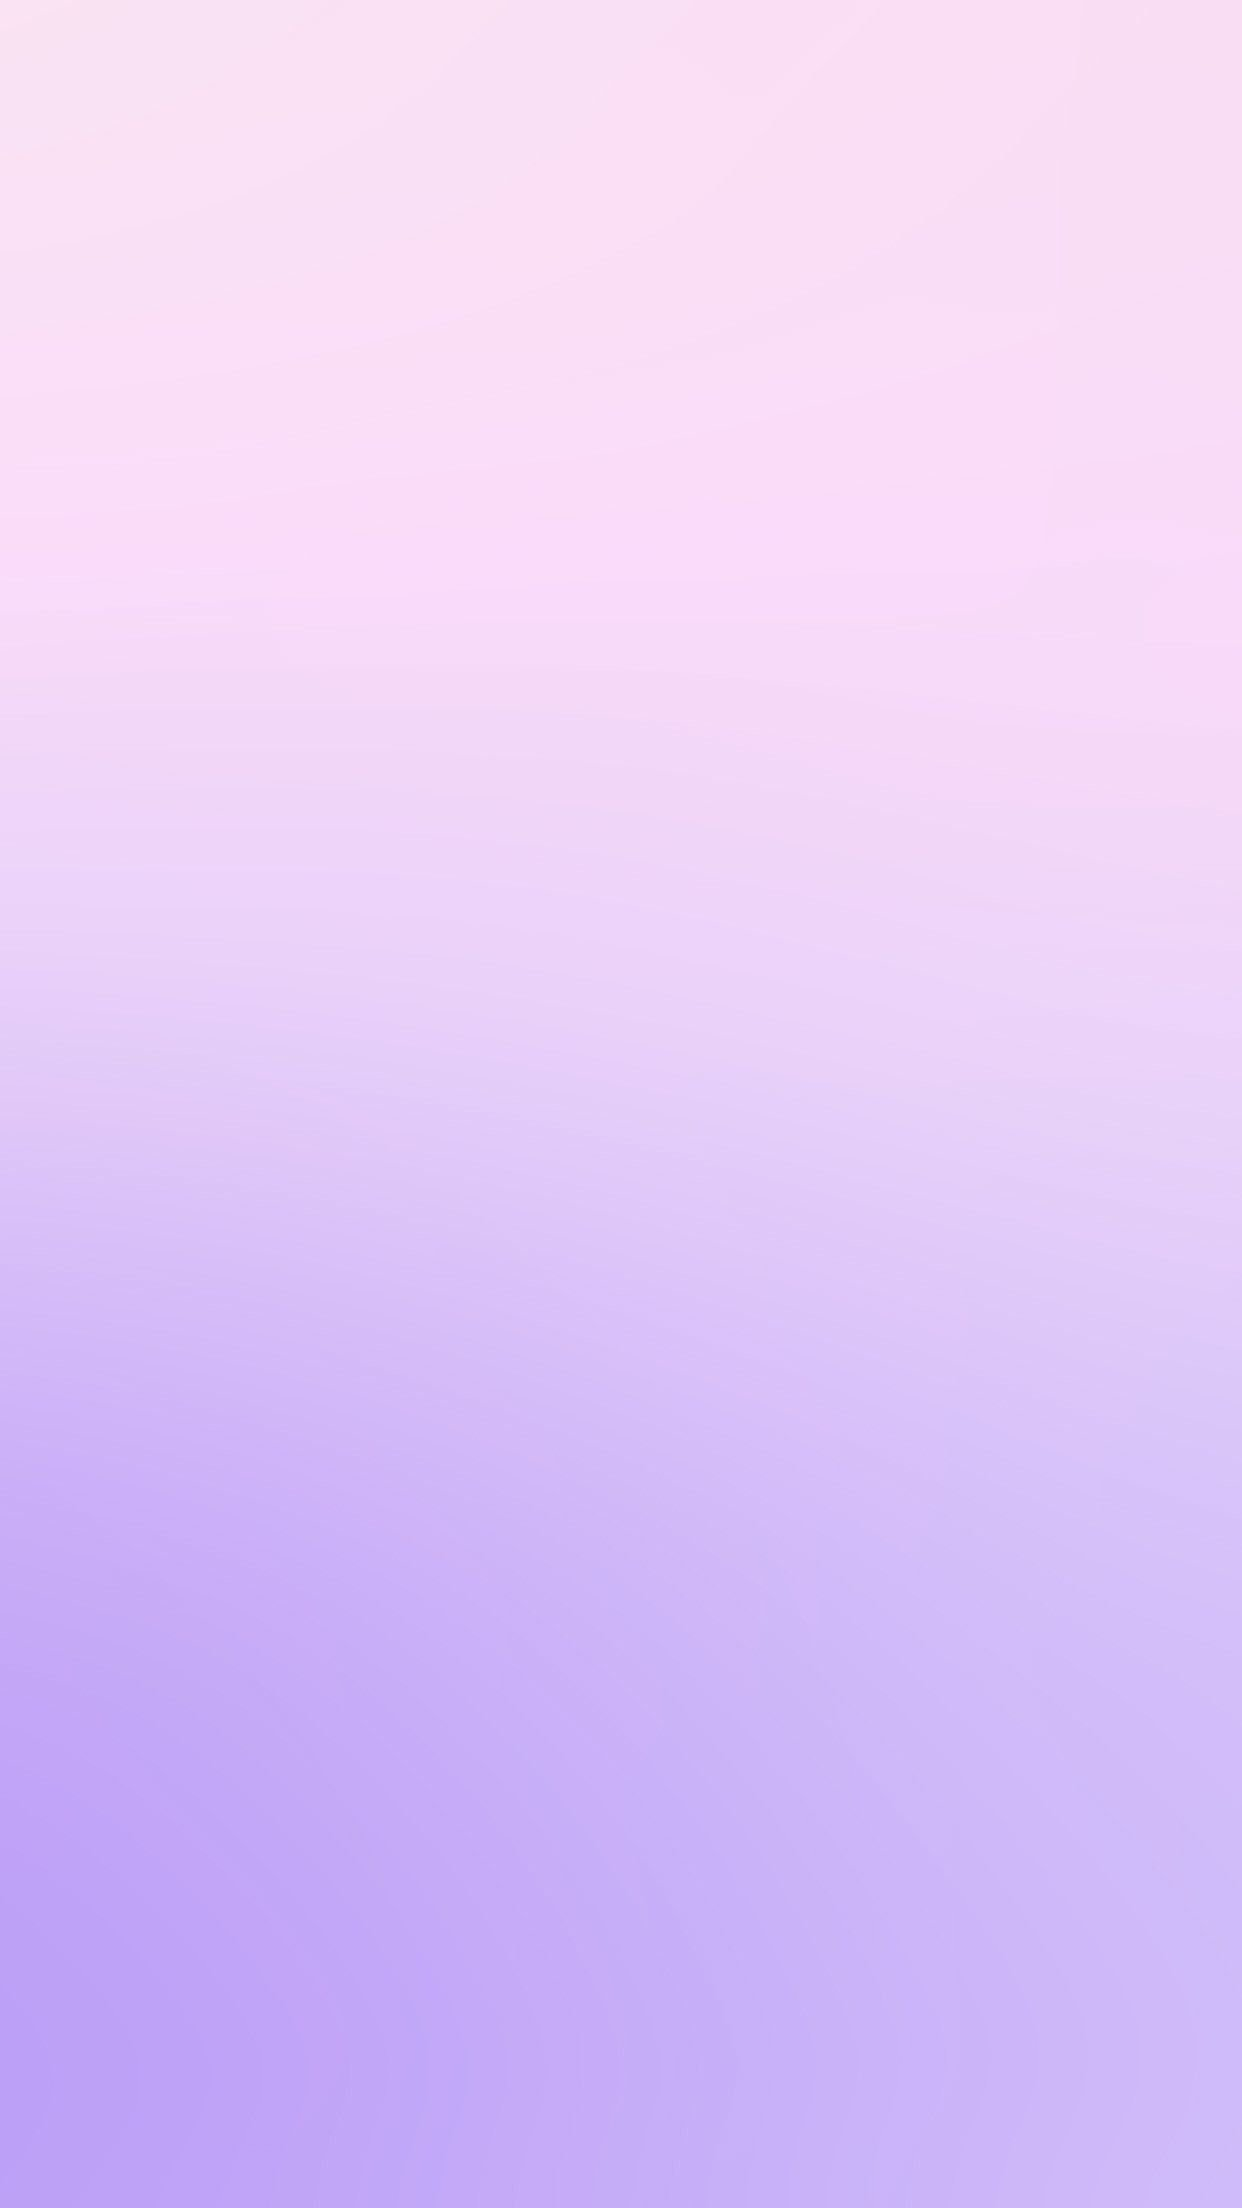 Aesthetic Light Purple Wallpapers posted by Ethan Peltier